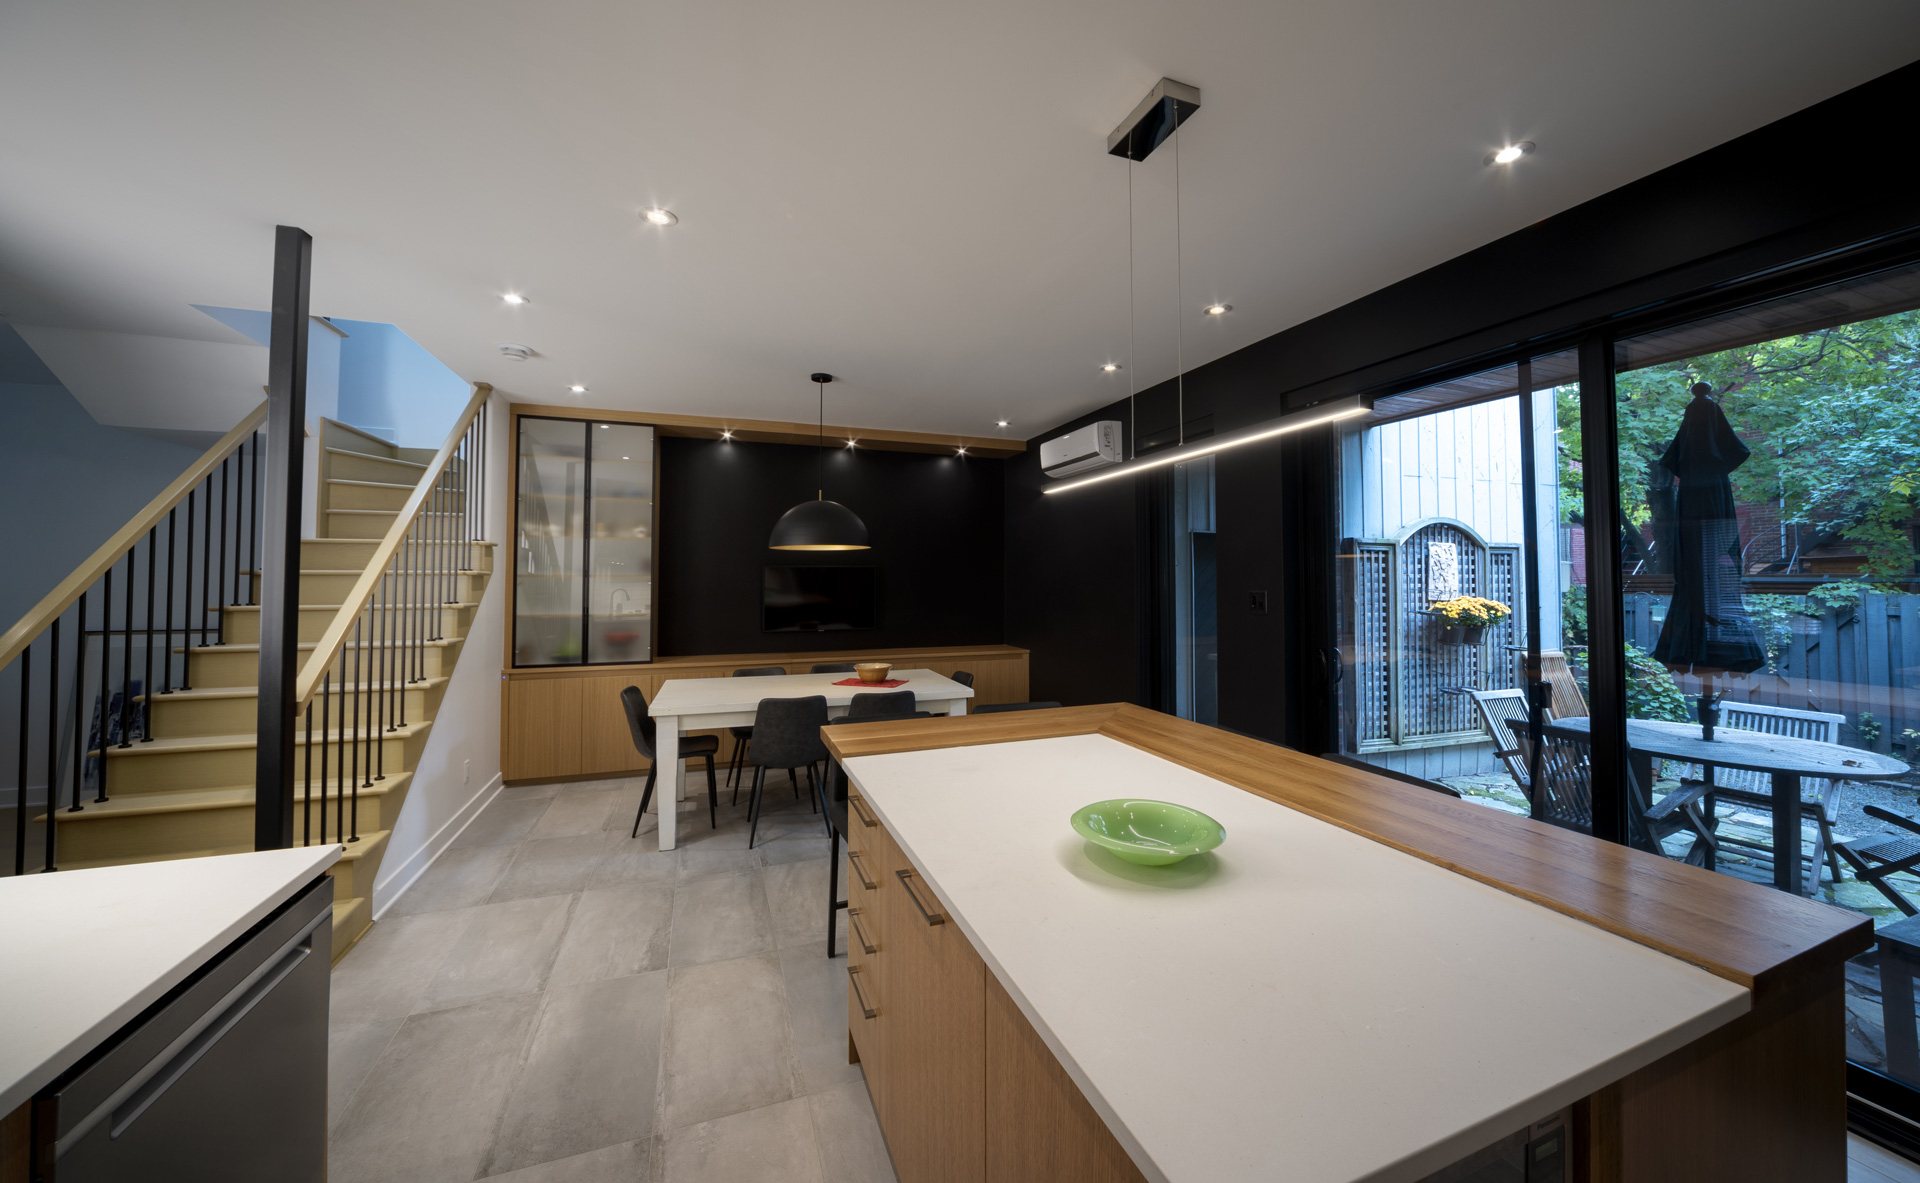 Modern kitchen with view on the terrace and dining room at the back of the room. A complete self-managed renovation